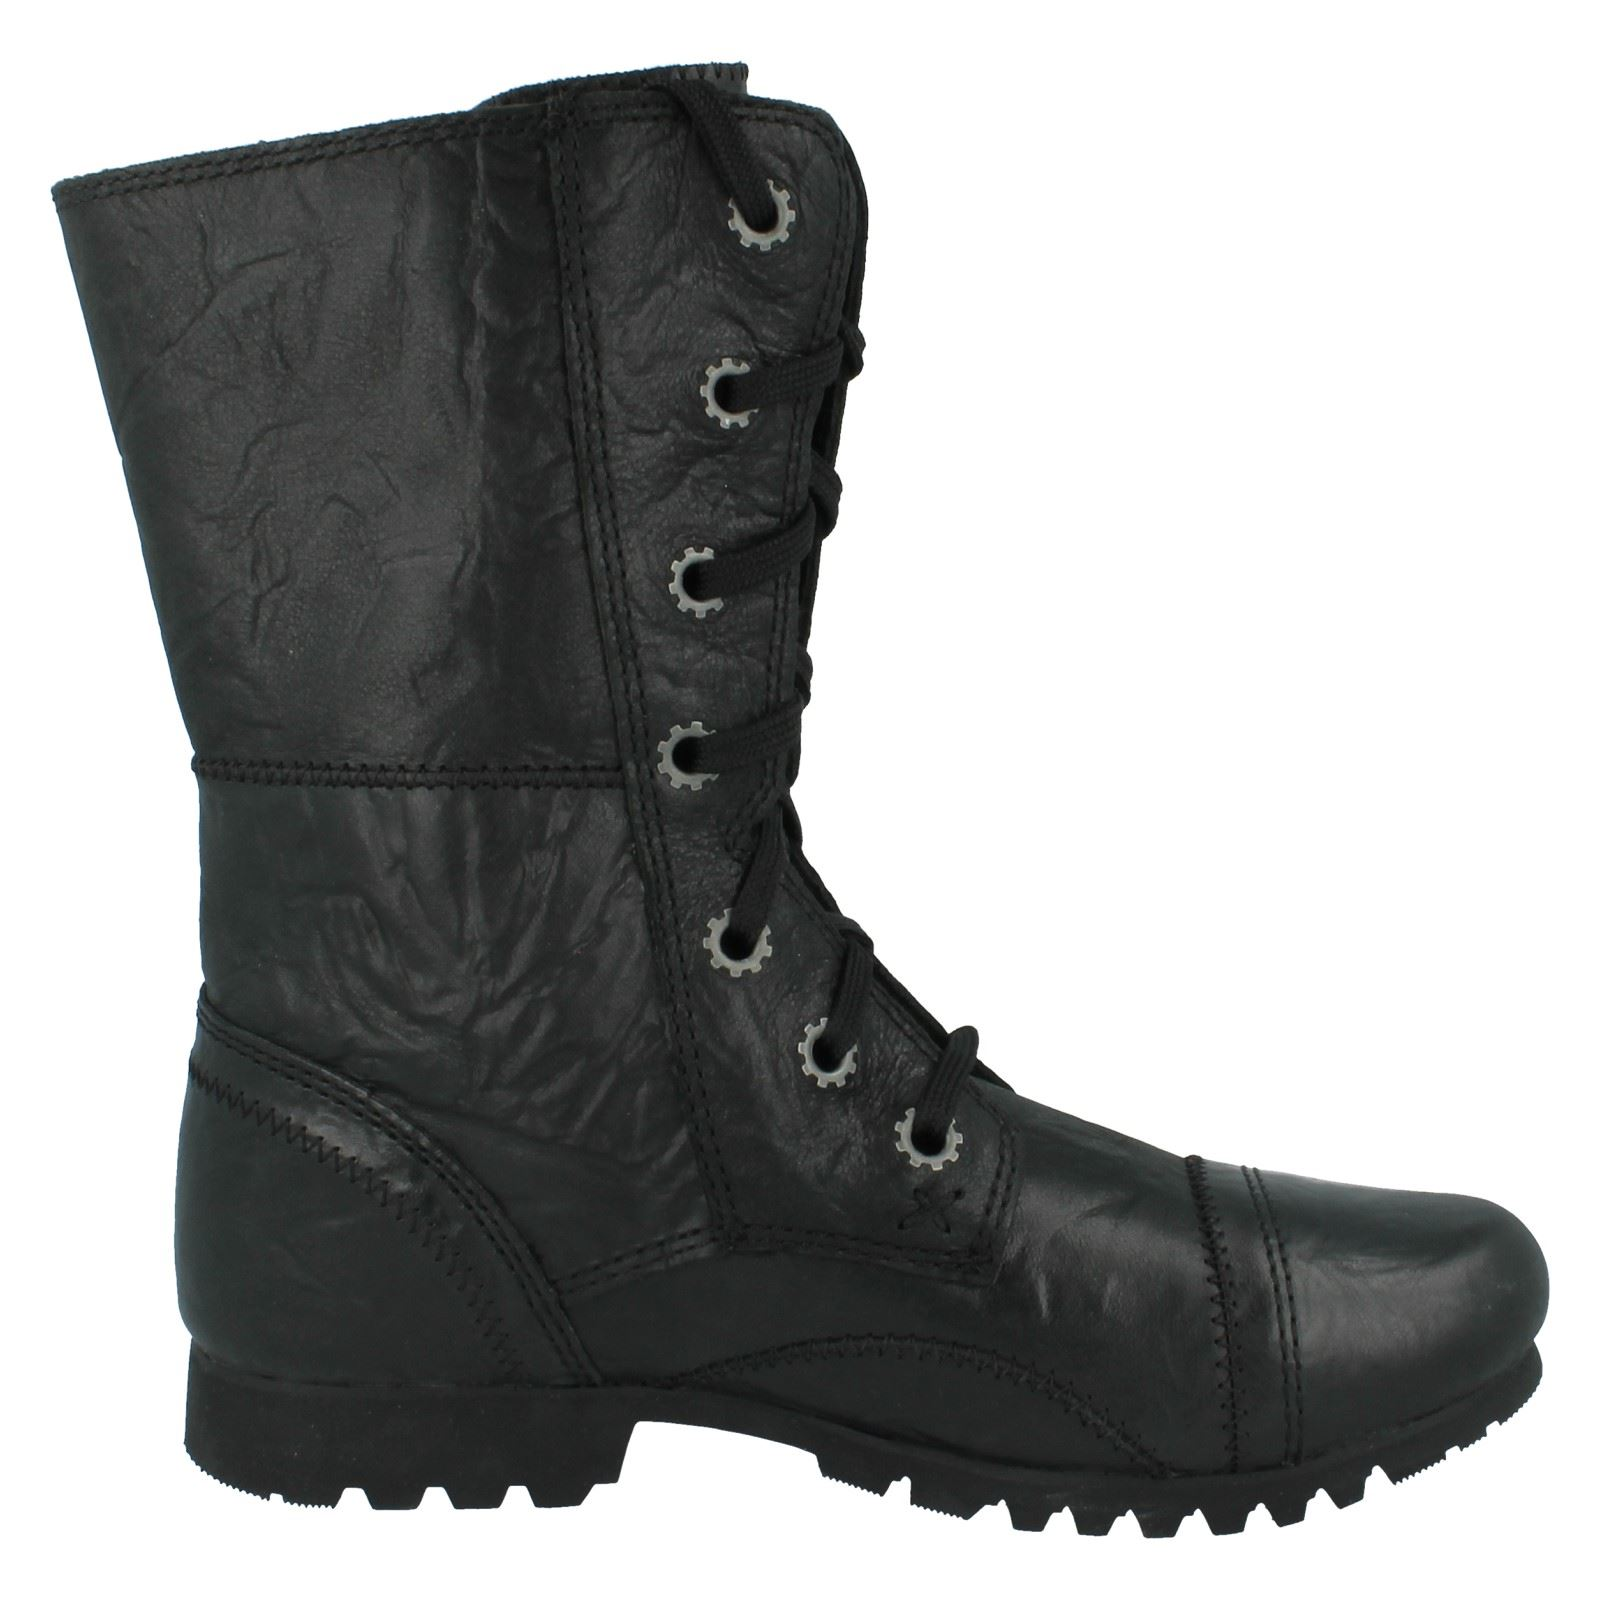 Damenschuhe Caterpillar Stiefel Style The Style Stiefel - Jane b96426